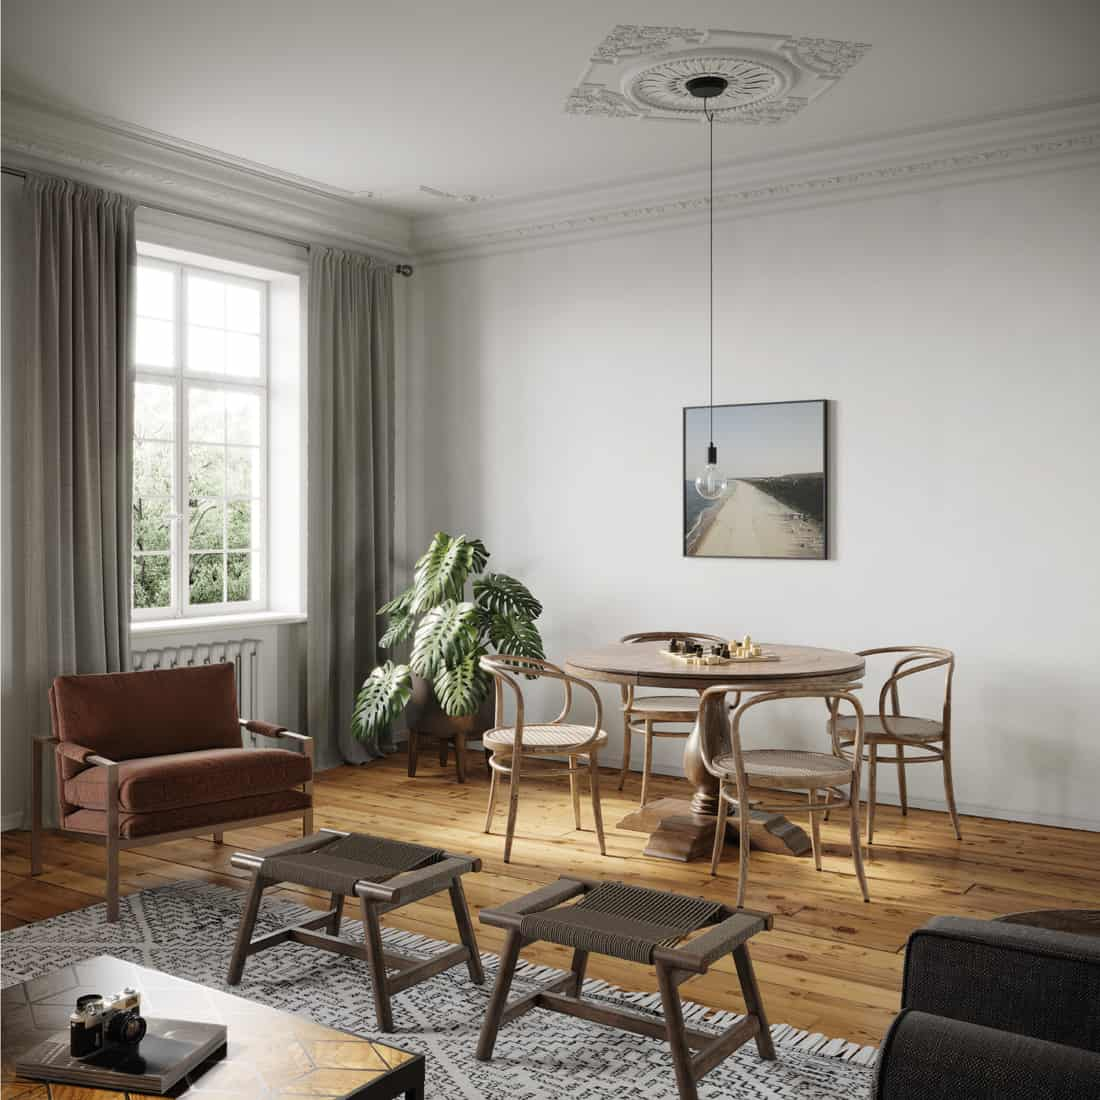 small playing table for four in a living room with tab curtains in the windows